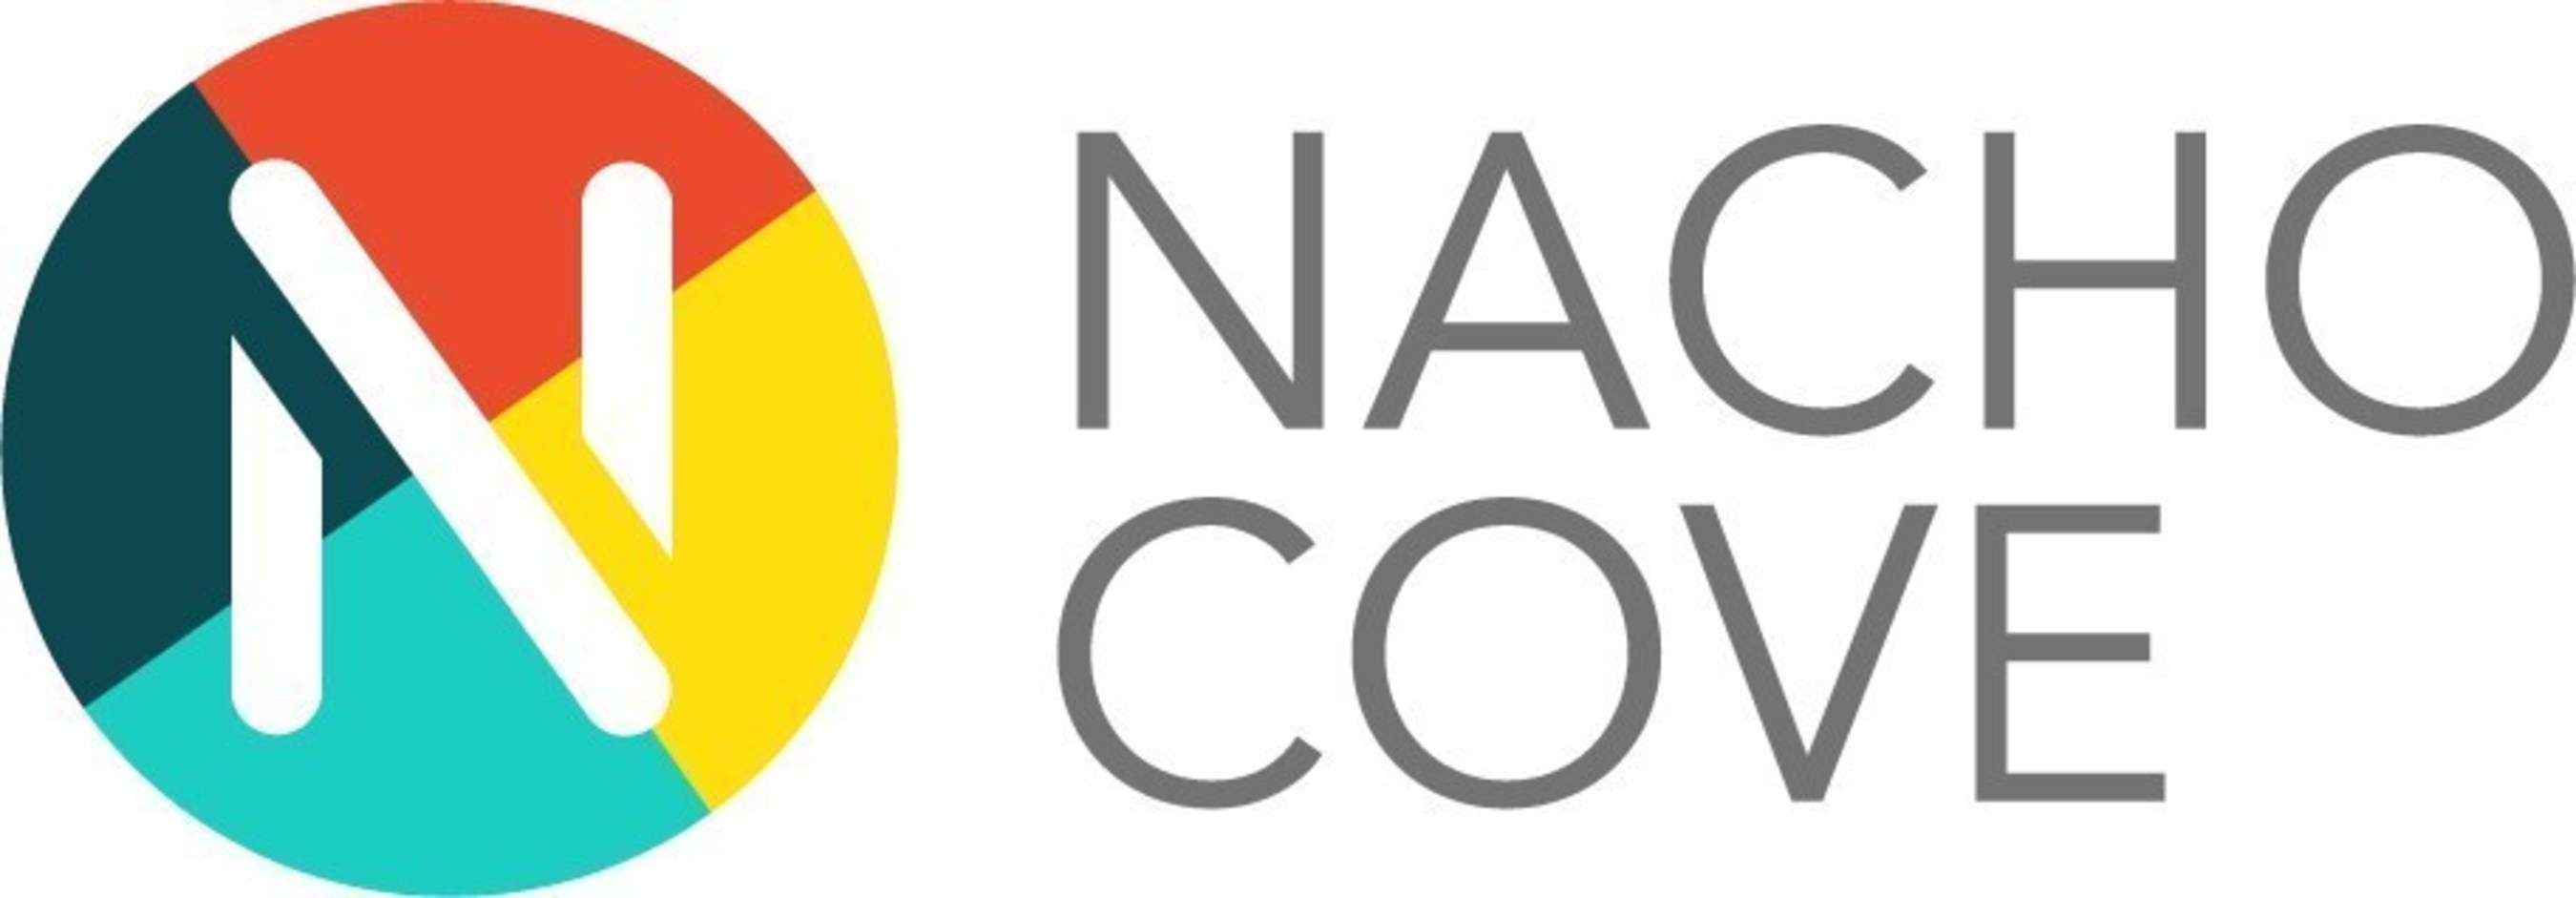 Nacho Cove delivers the best enterprise email client with security and artificial intelligence. Available on mobile devices and desktop. (PRNewsFoto/Nacho Cove)